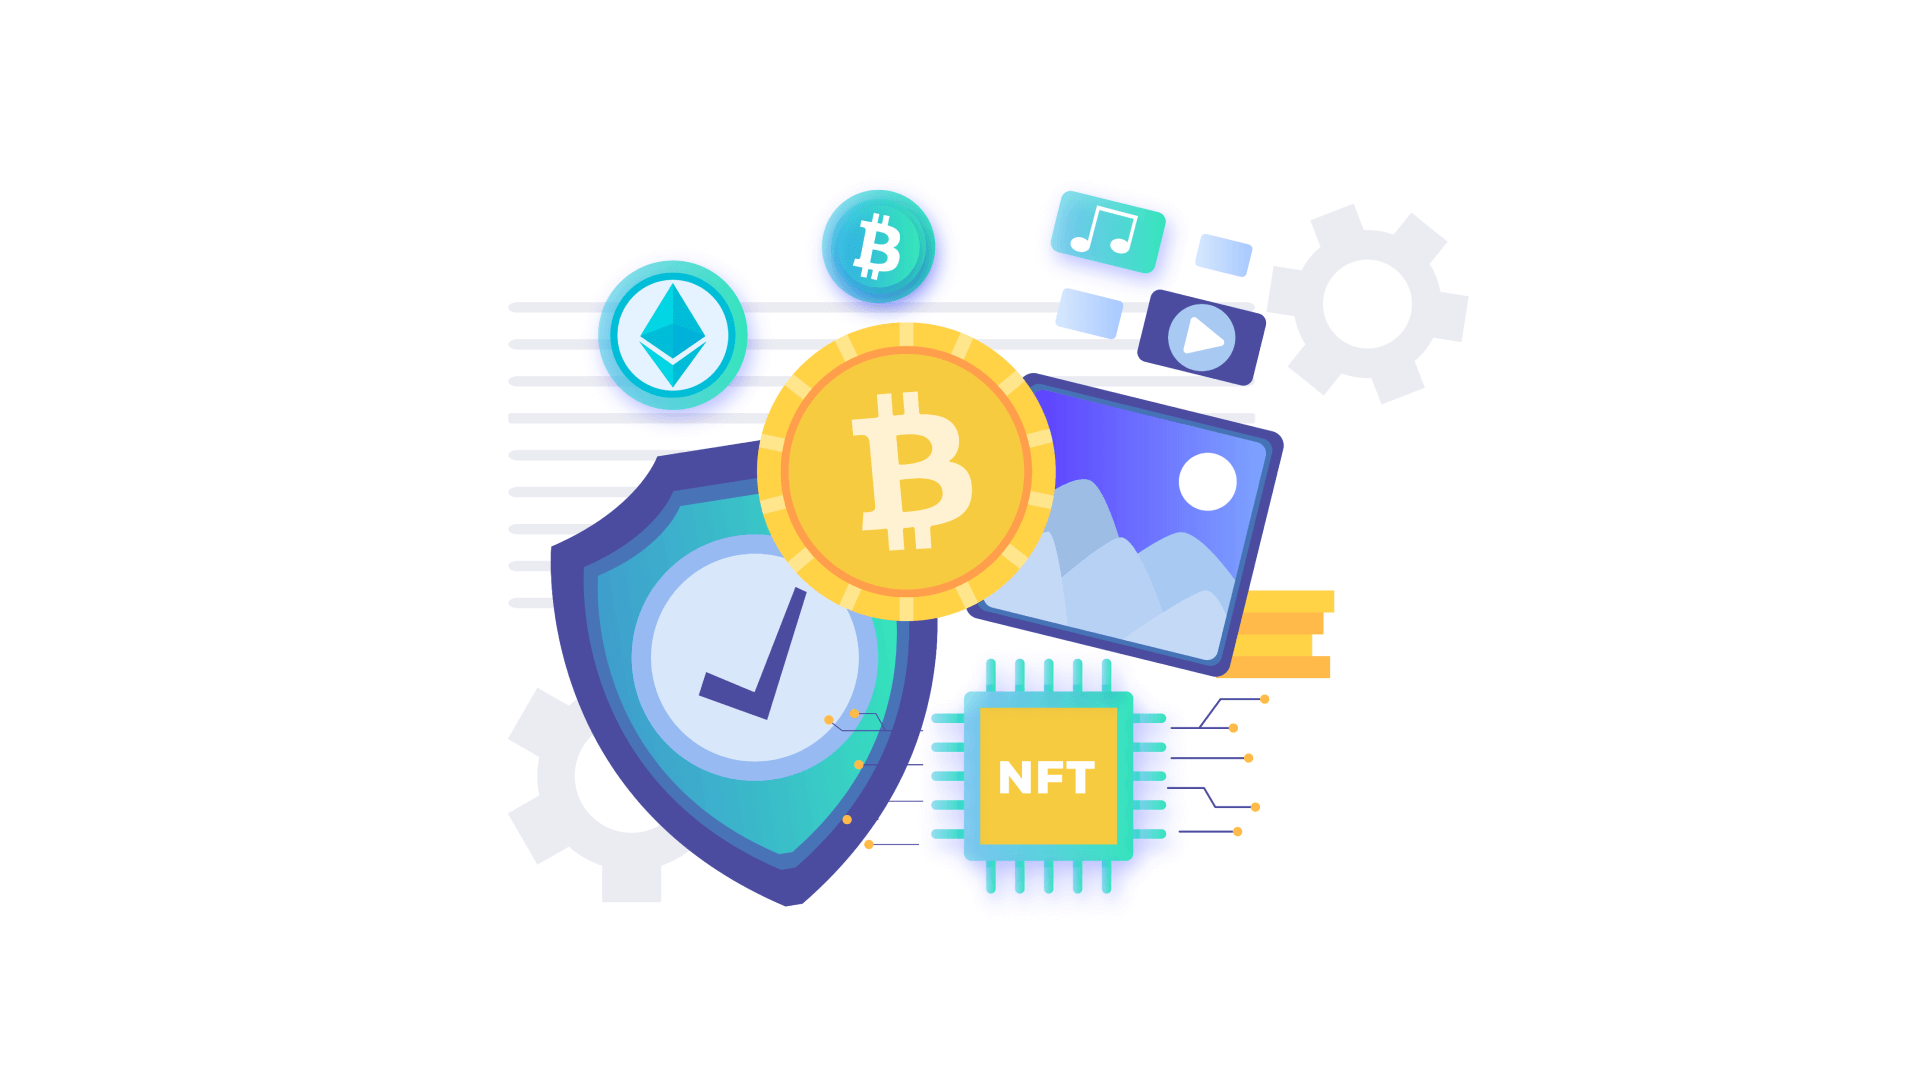 Additionally, you need a better understanding of what tokens are, their price, and how you can develop them.